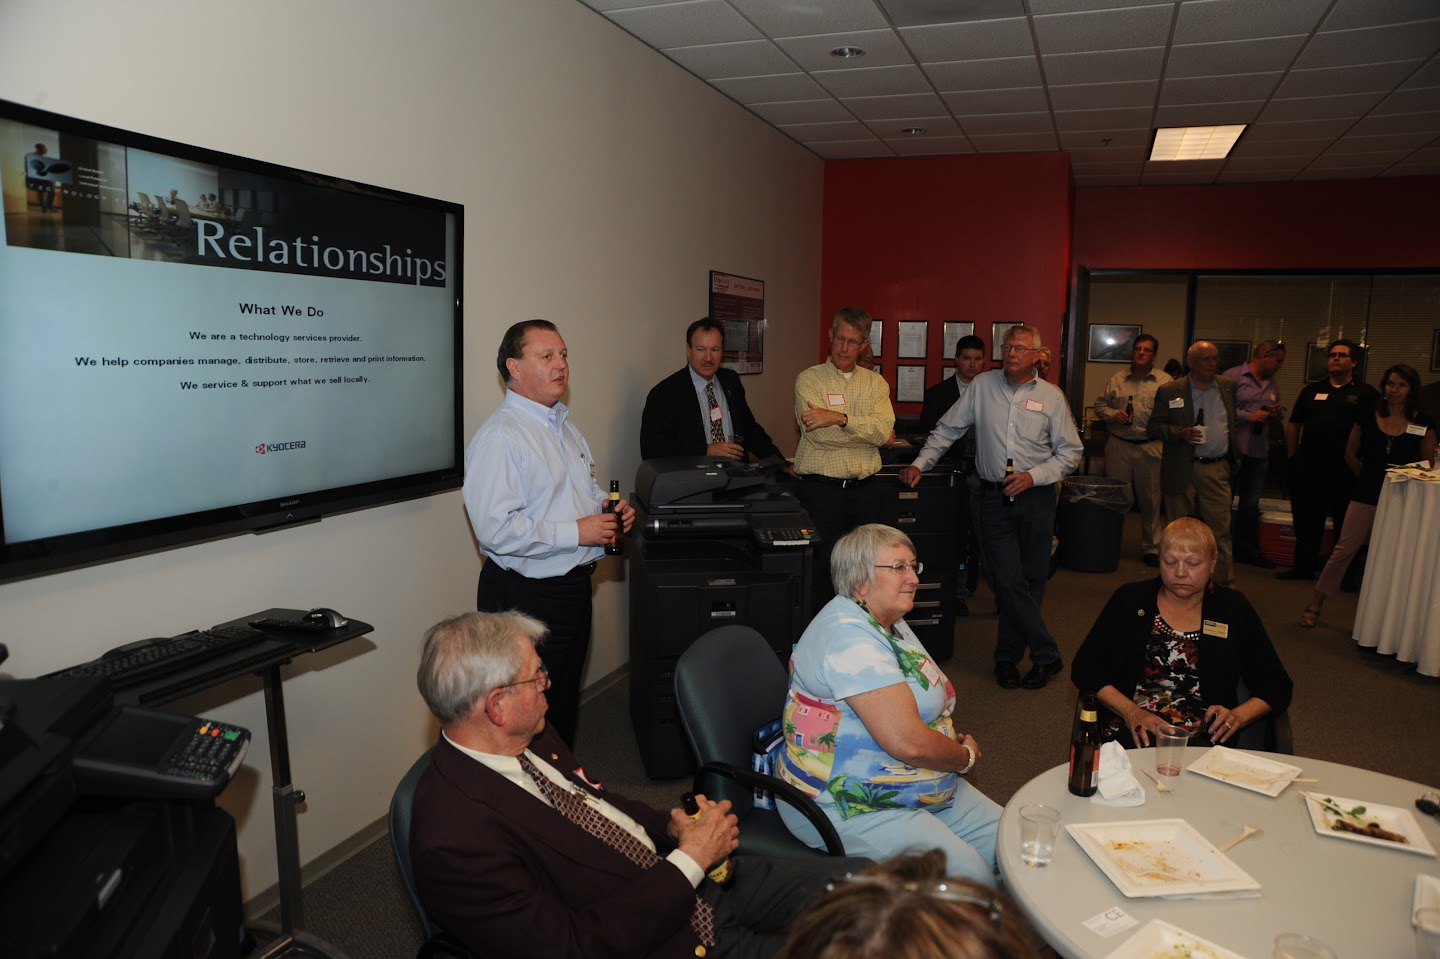 Our host Doug Johnson explains what Discovery Office Systems is all about